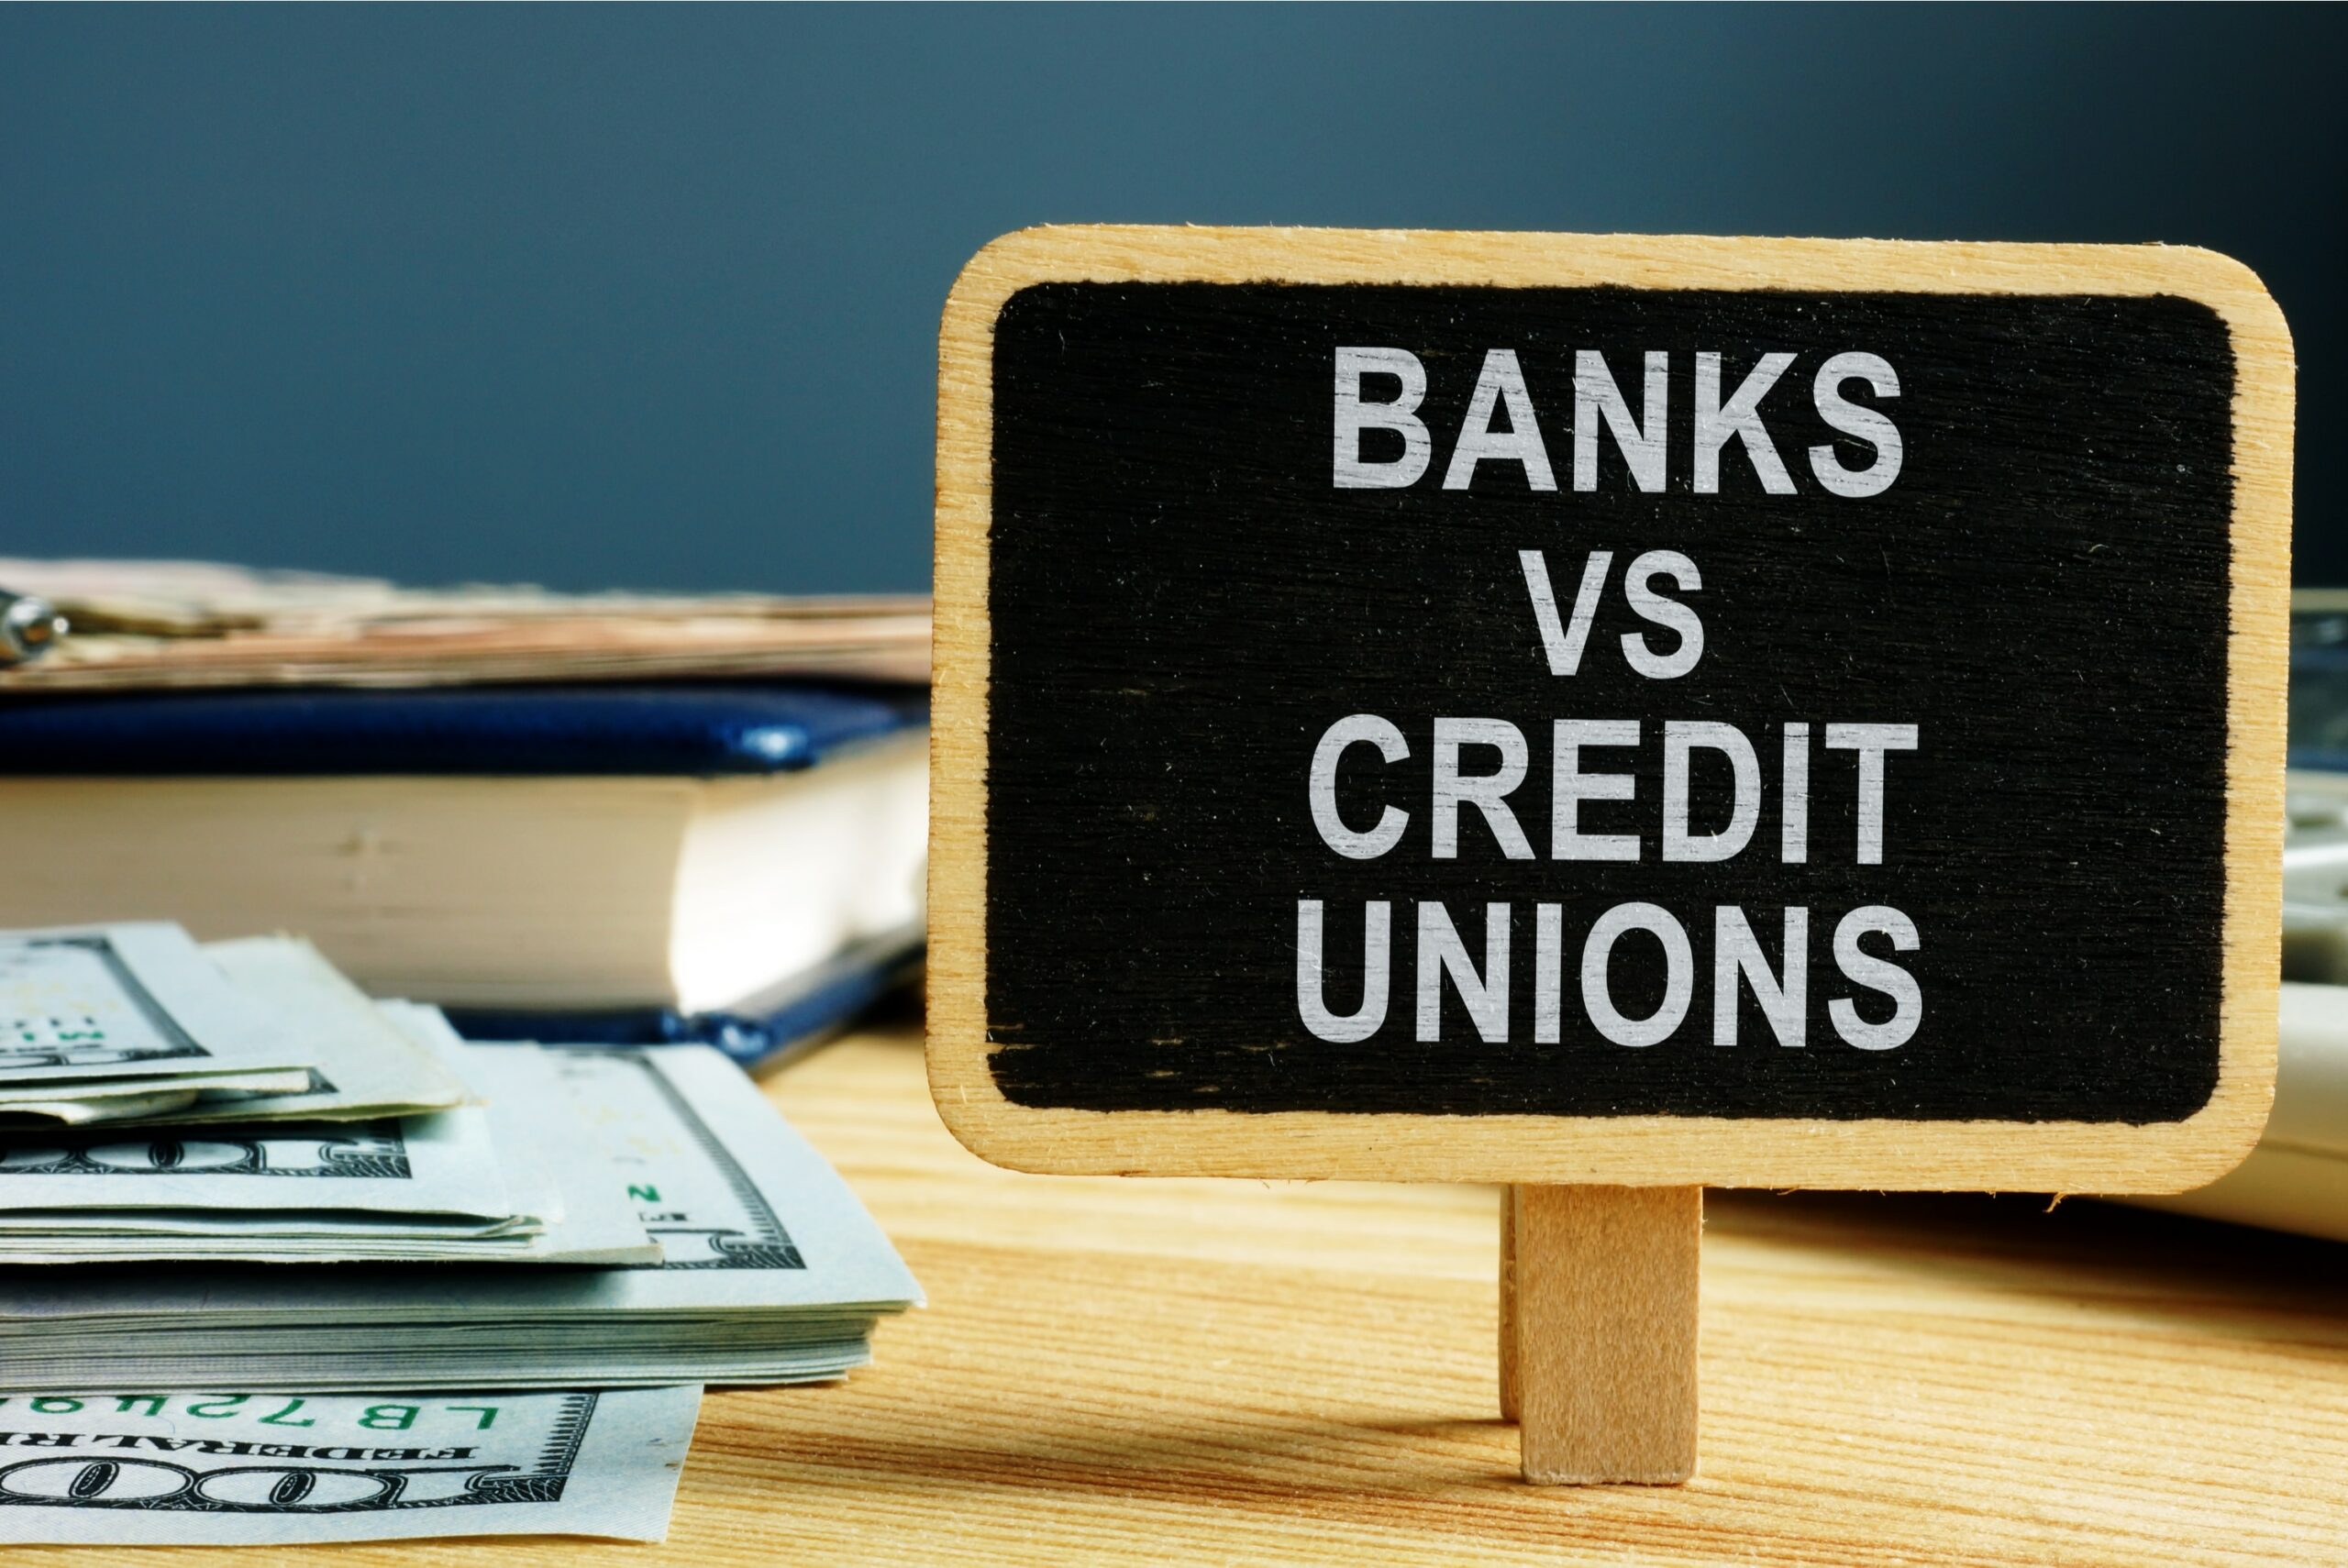 All About Credit Unions - Why They Can Serve You Better Than Banks